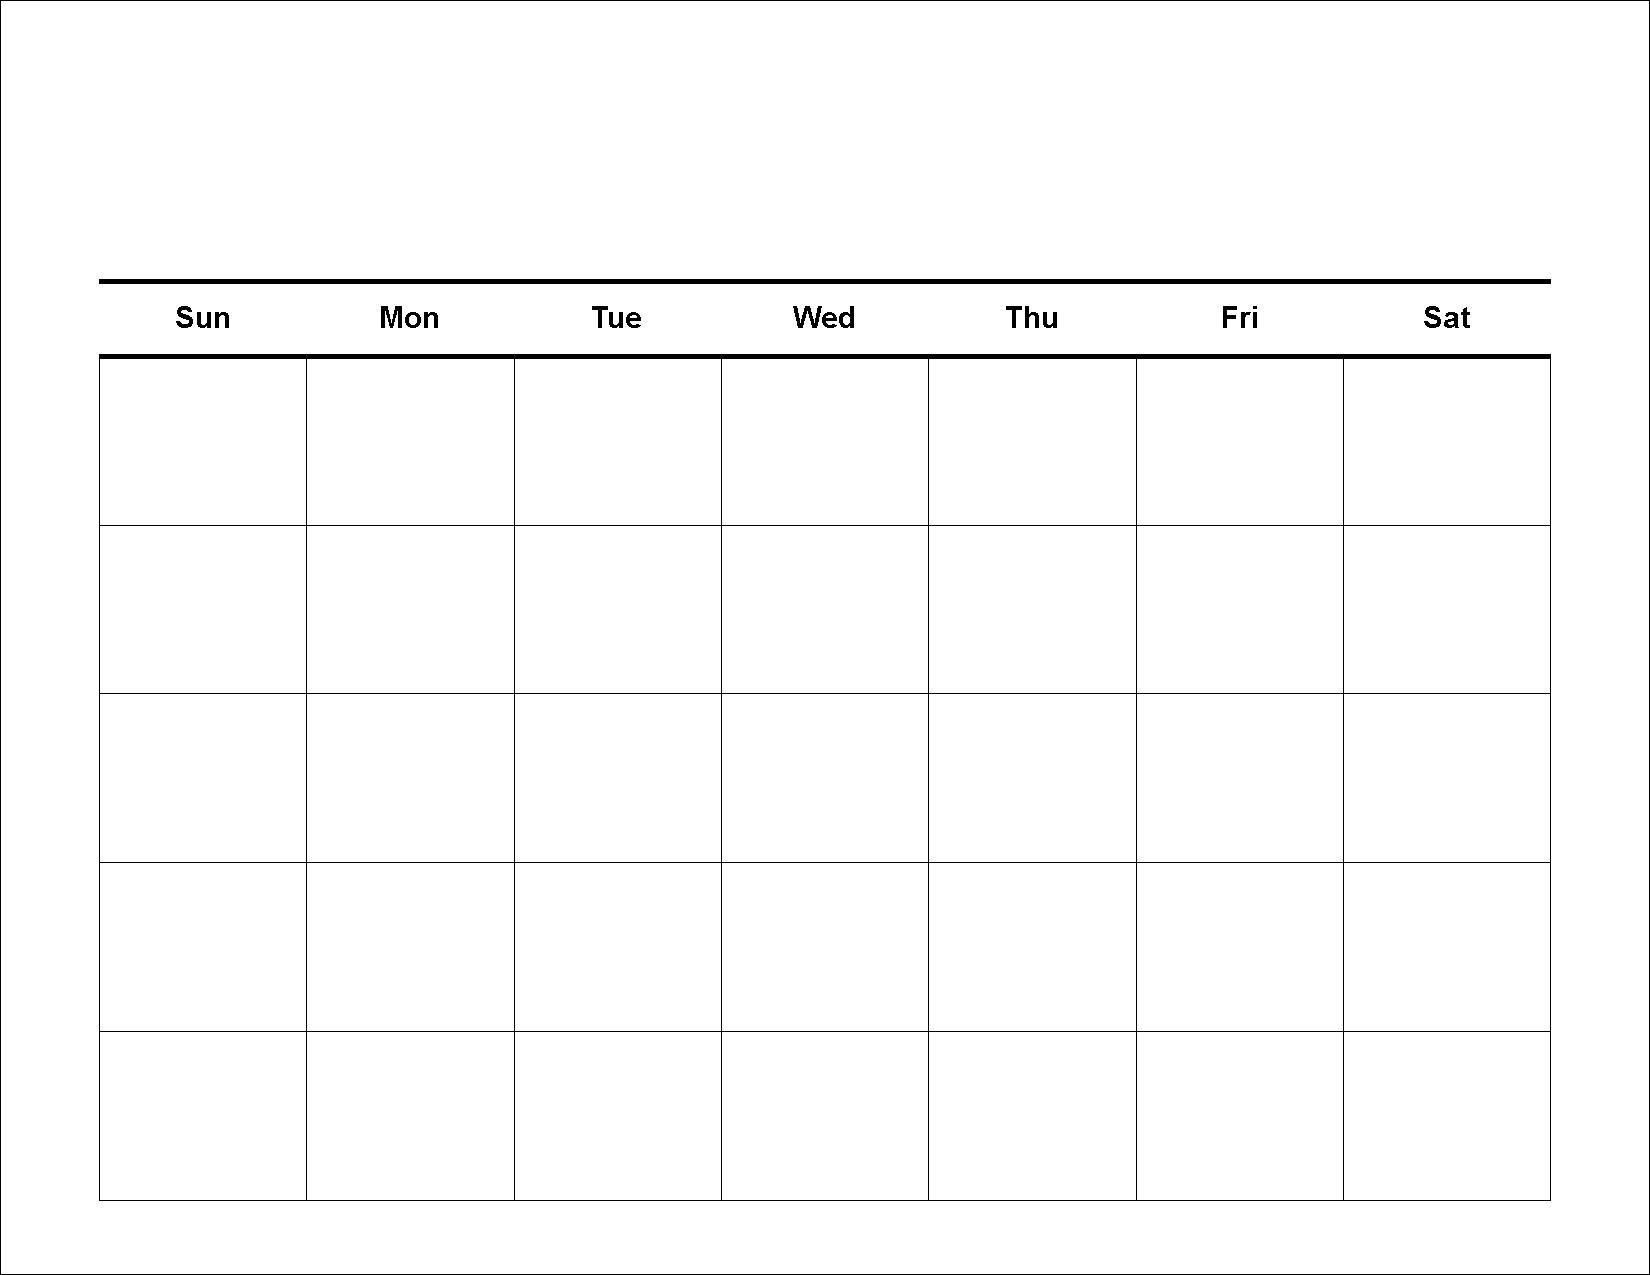 Free Task Planner Templates For You : Vientazona 2 Week Schedule Word Template